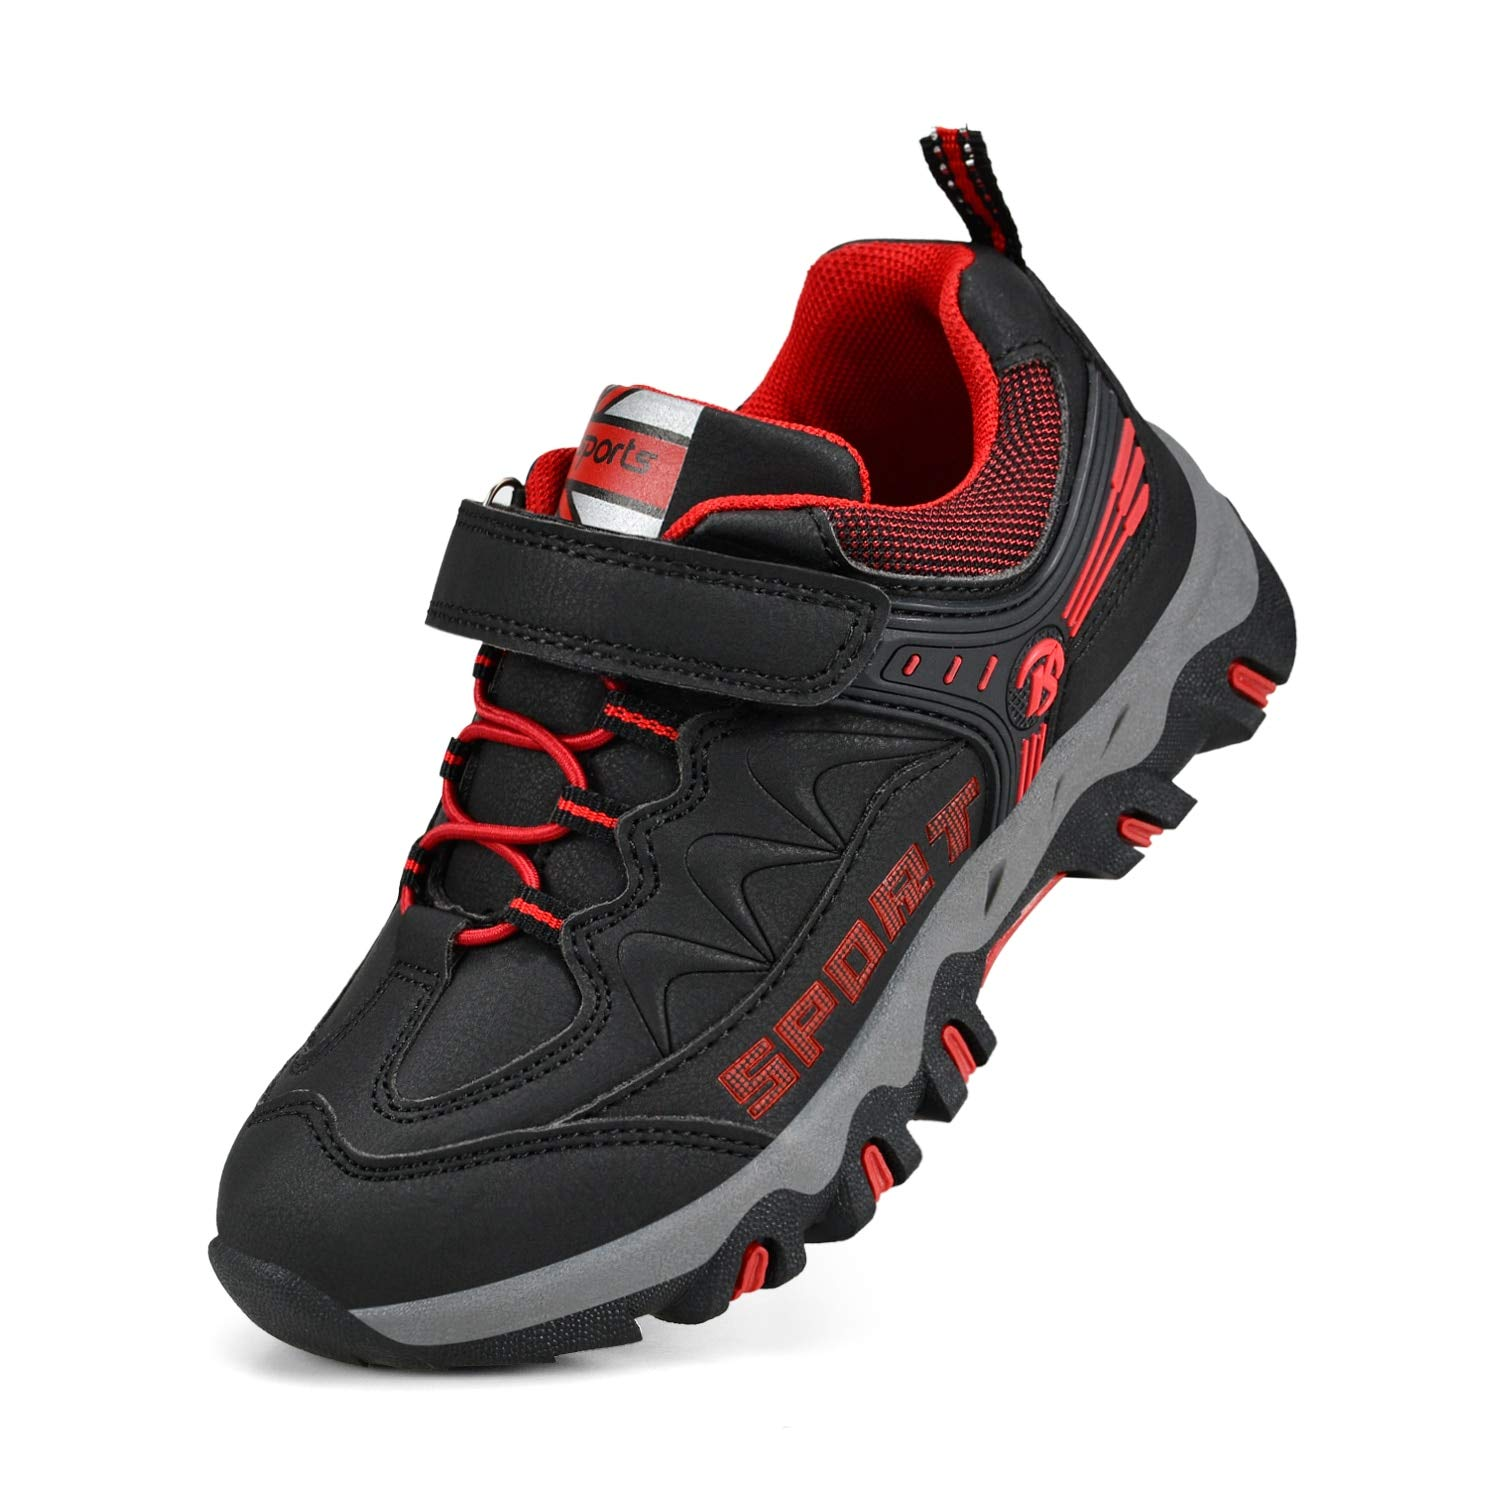 MARSVOVO BoysRunning Shoes Waterproof Outdoor Hiking Shoes Sneakers Black/Red 2 M US